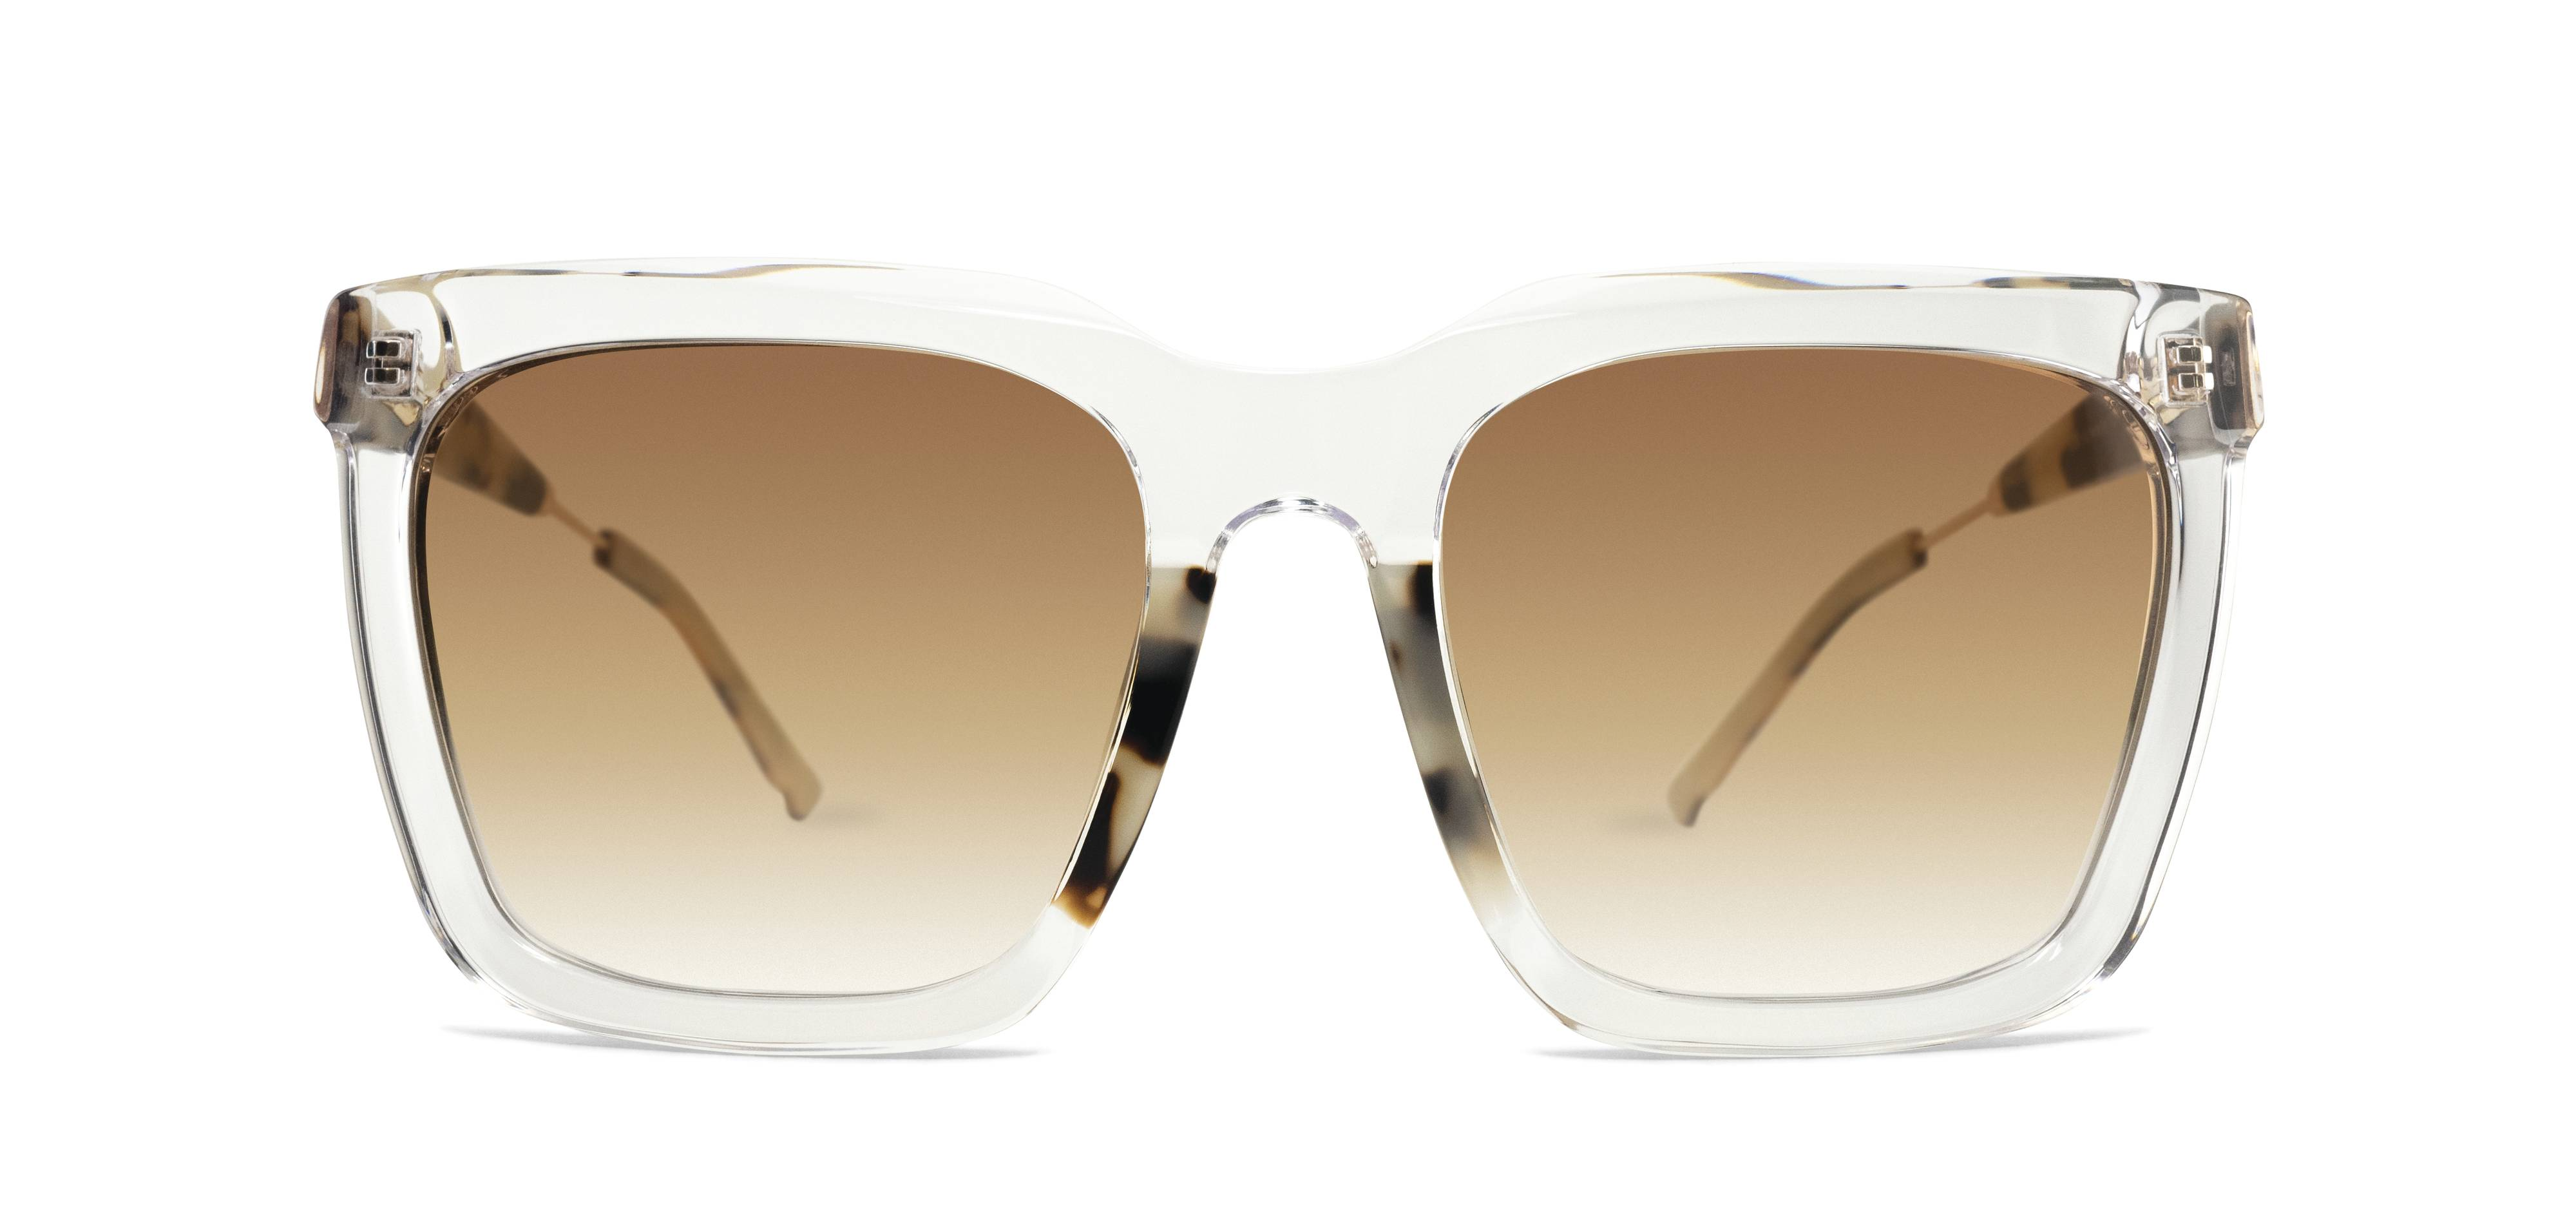 lively-101 sunglasses coco and breezy